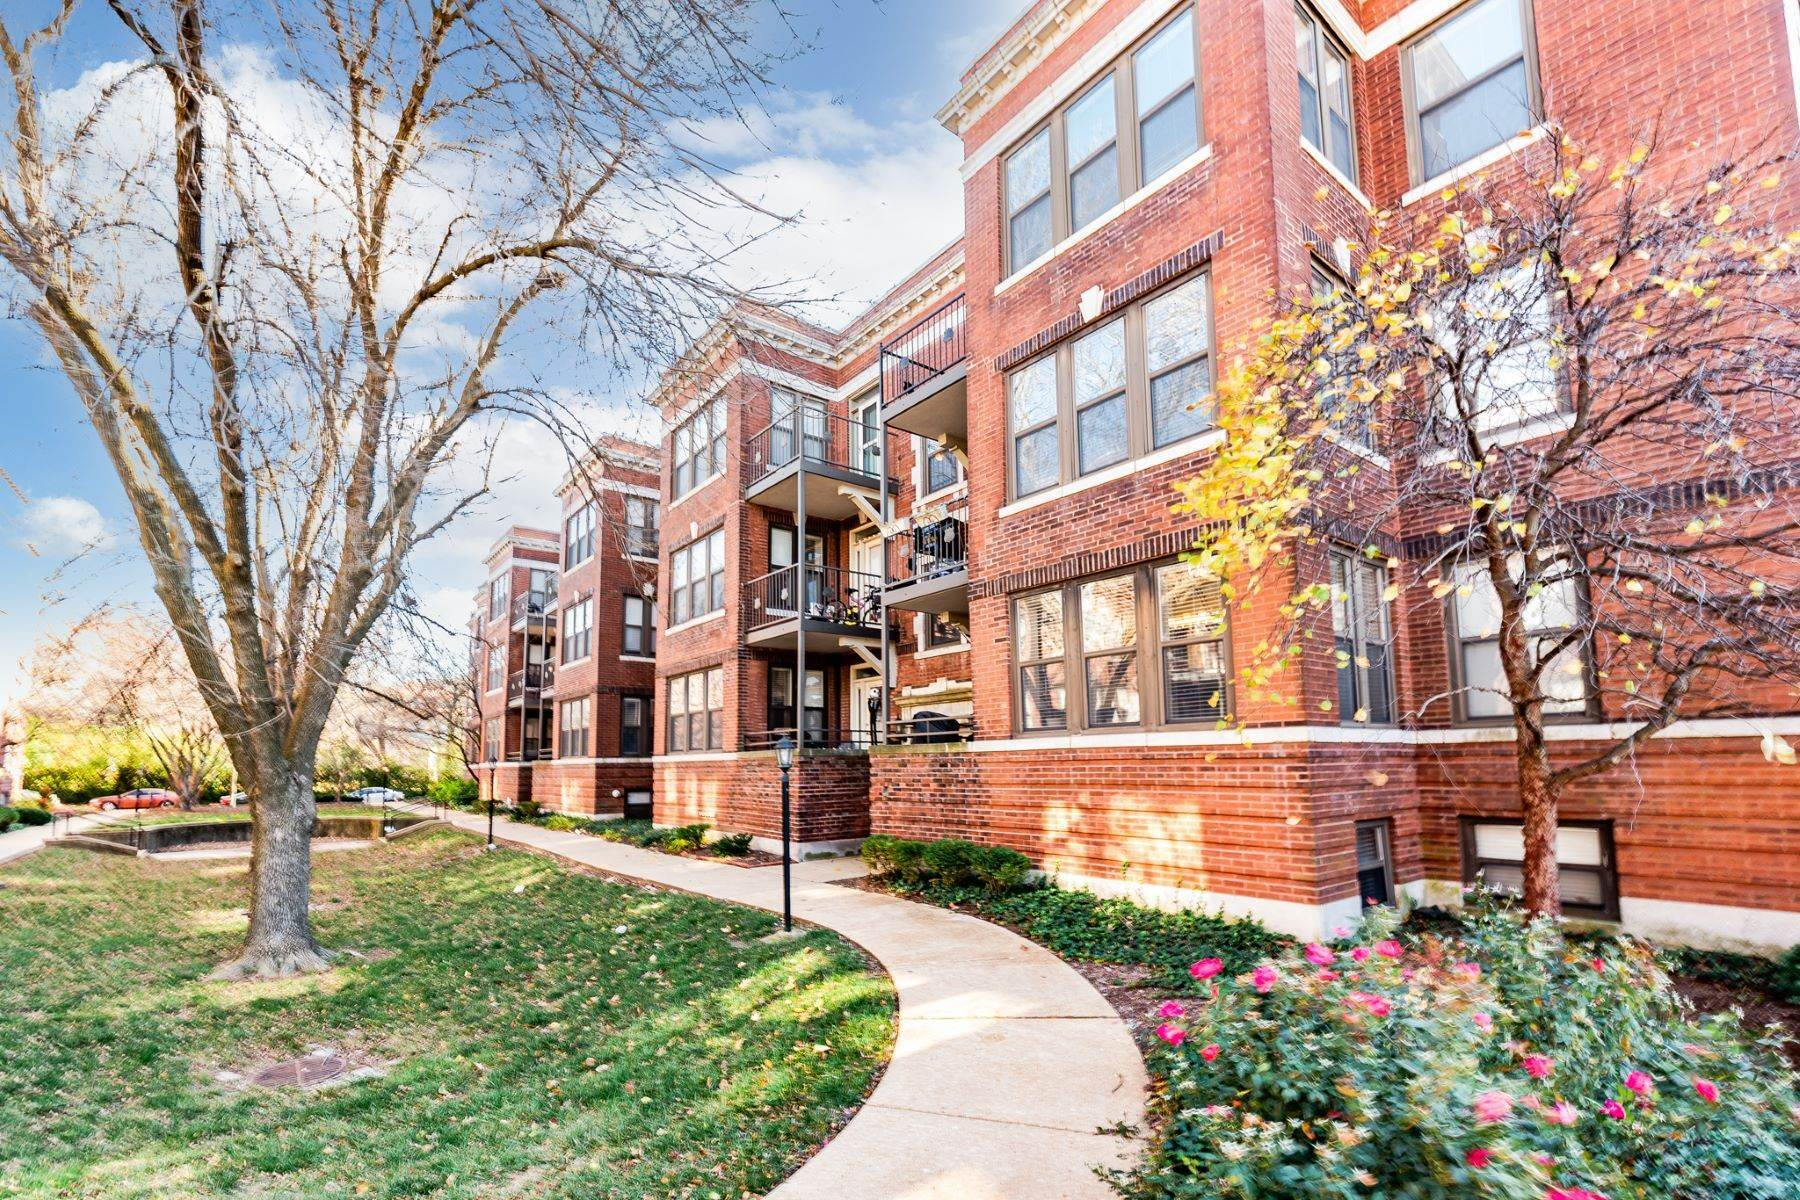 Condominiums for Sale at Historic Charming Condo in CWE 609 Clara Avenue, #15 St. Louis, Missouri 63112 United States